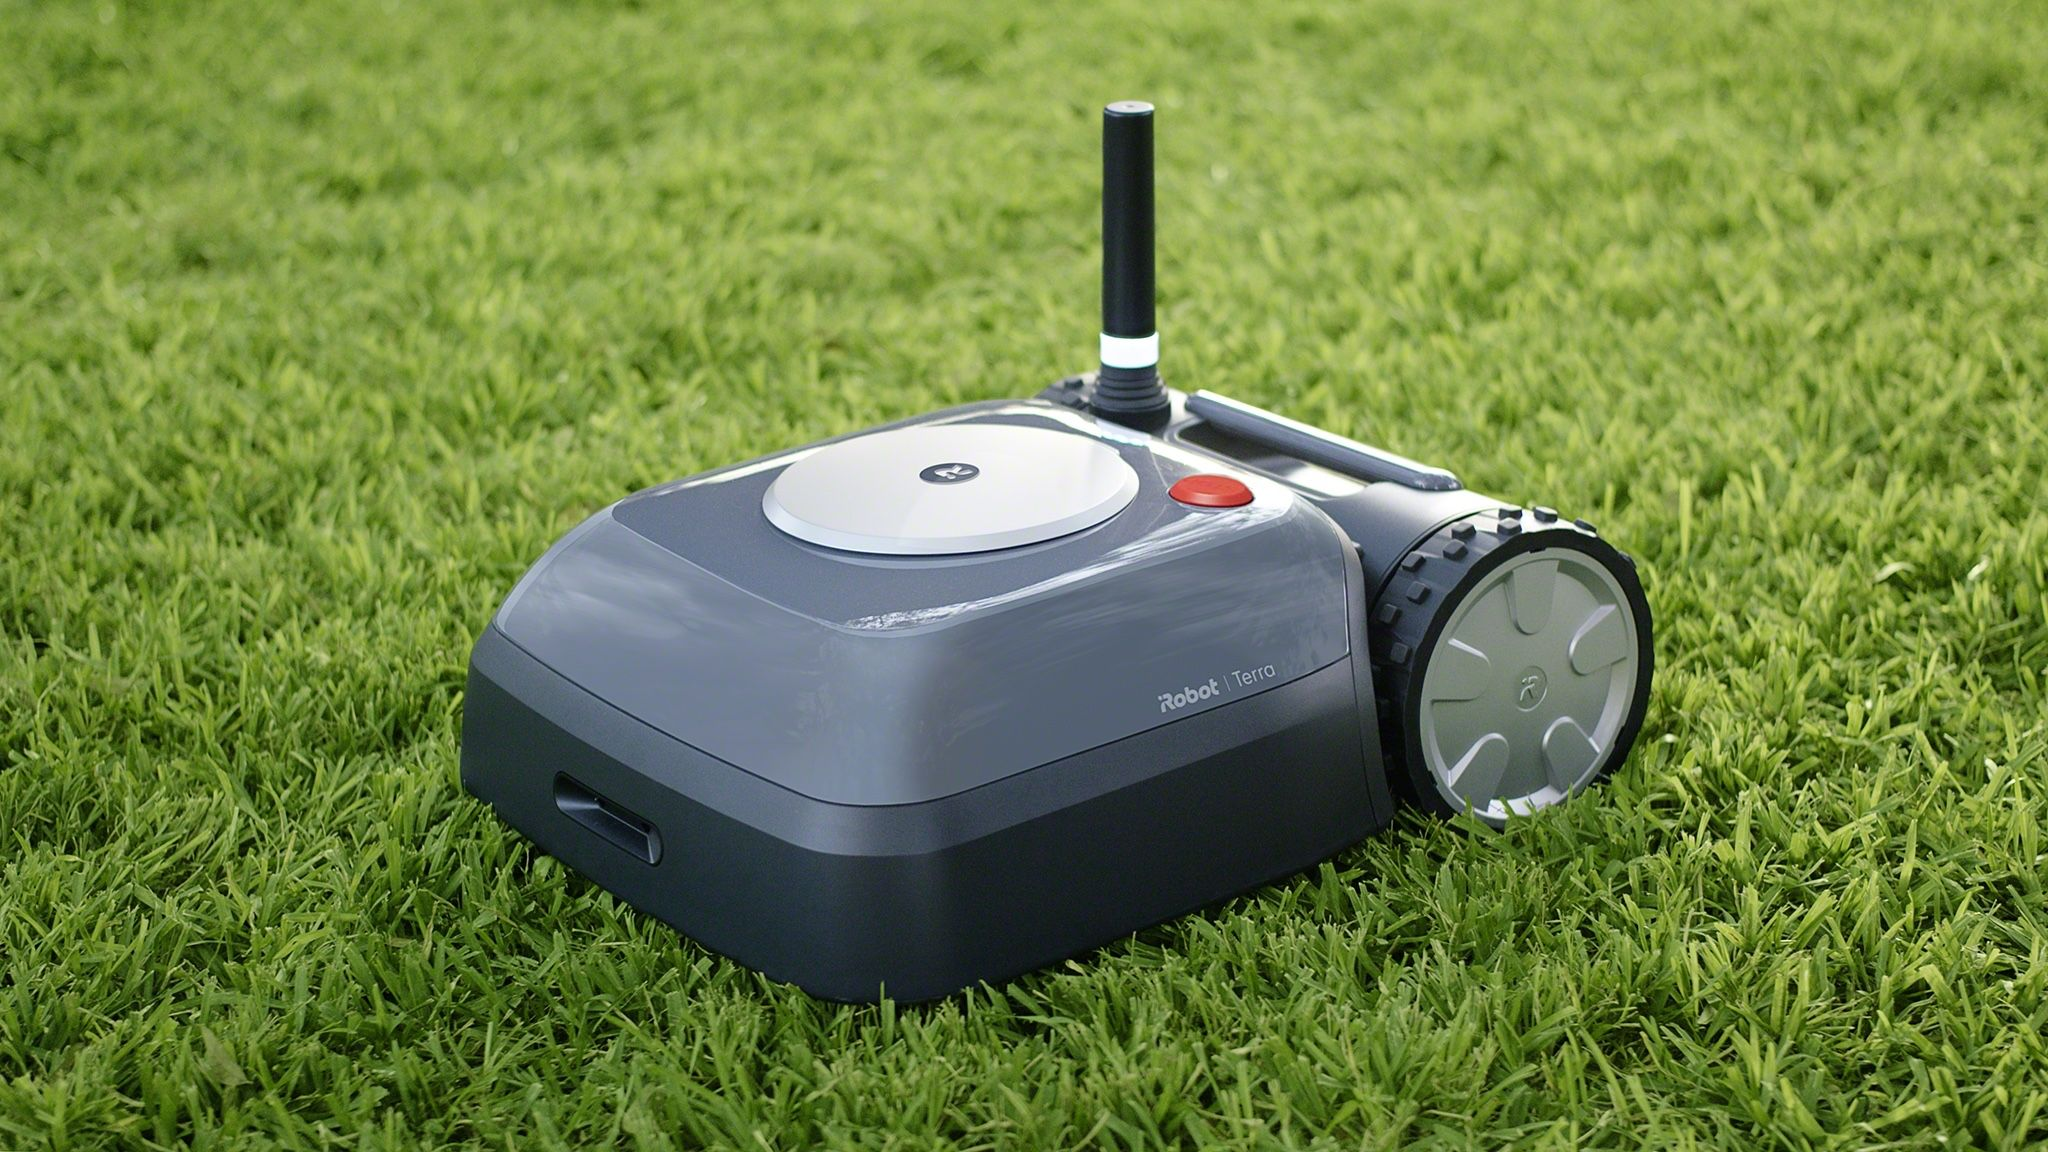 Irobot Finally Announces Awesome New Terra Robotic